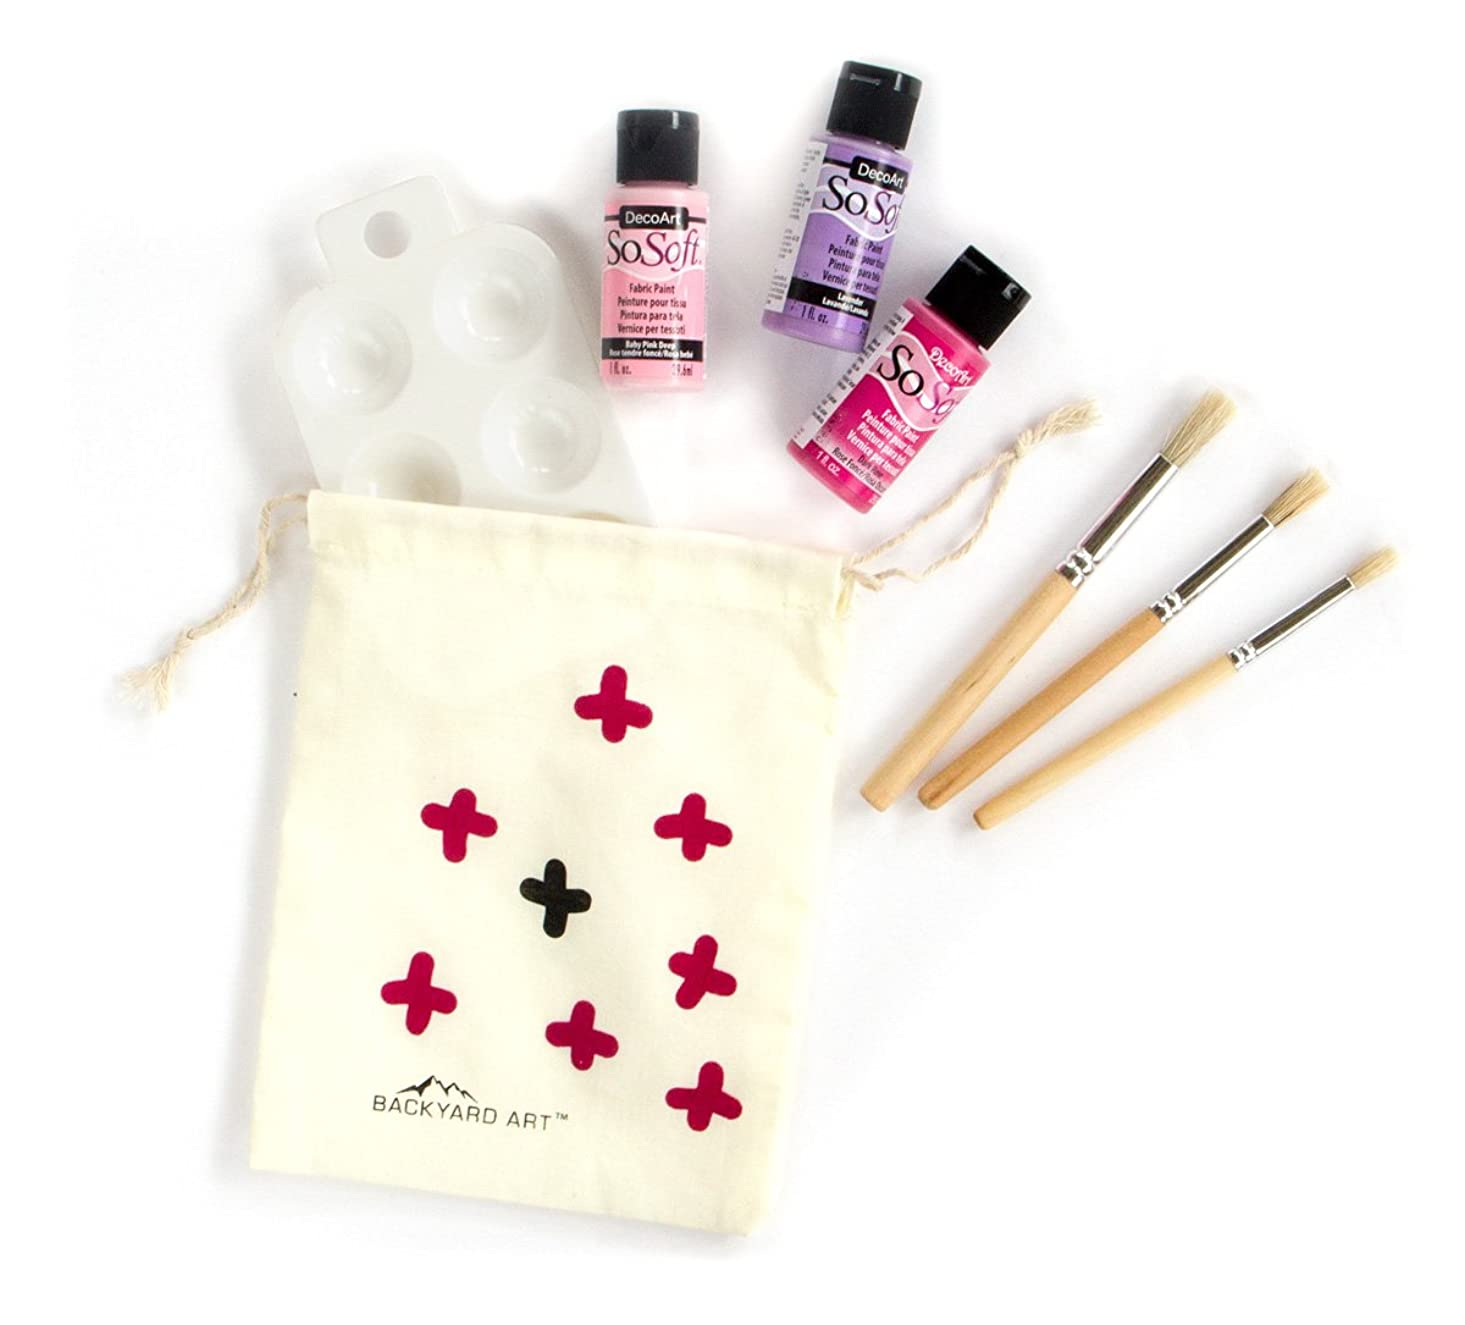 Fabric Painting Set - Make Your Own T-Shirts, Onesies, Totes and More - 3 DecoArt SoSoft Paints in Pink, Rose, and Lavender, 3 Brushes and a Palette pjxnx022043